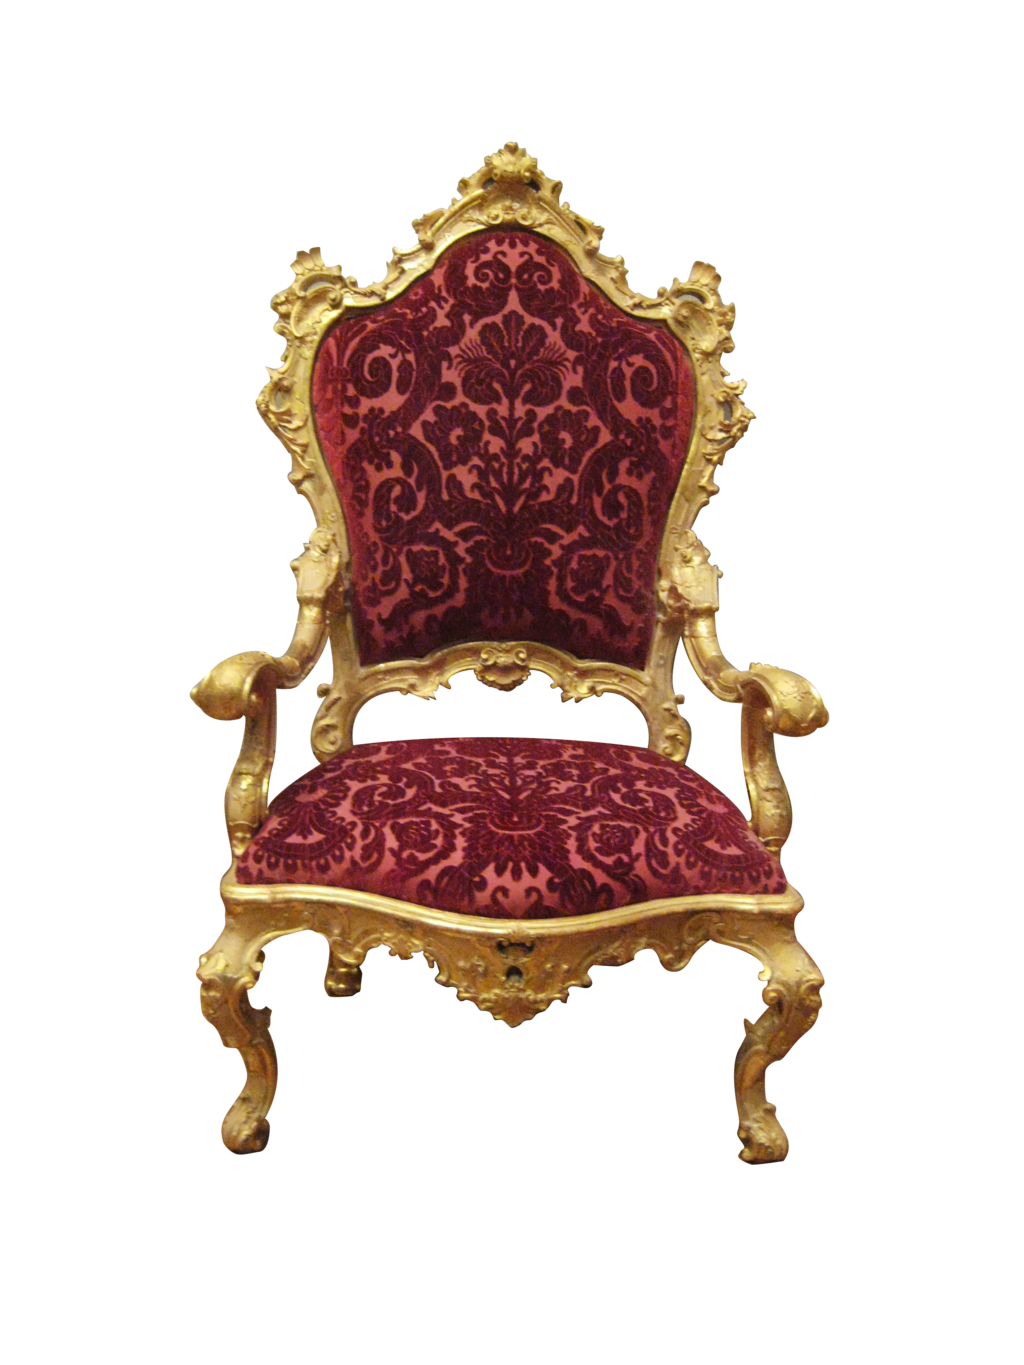 King throne png. Chair transparent images all